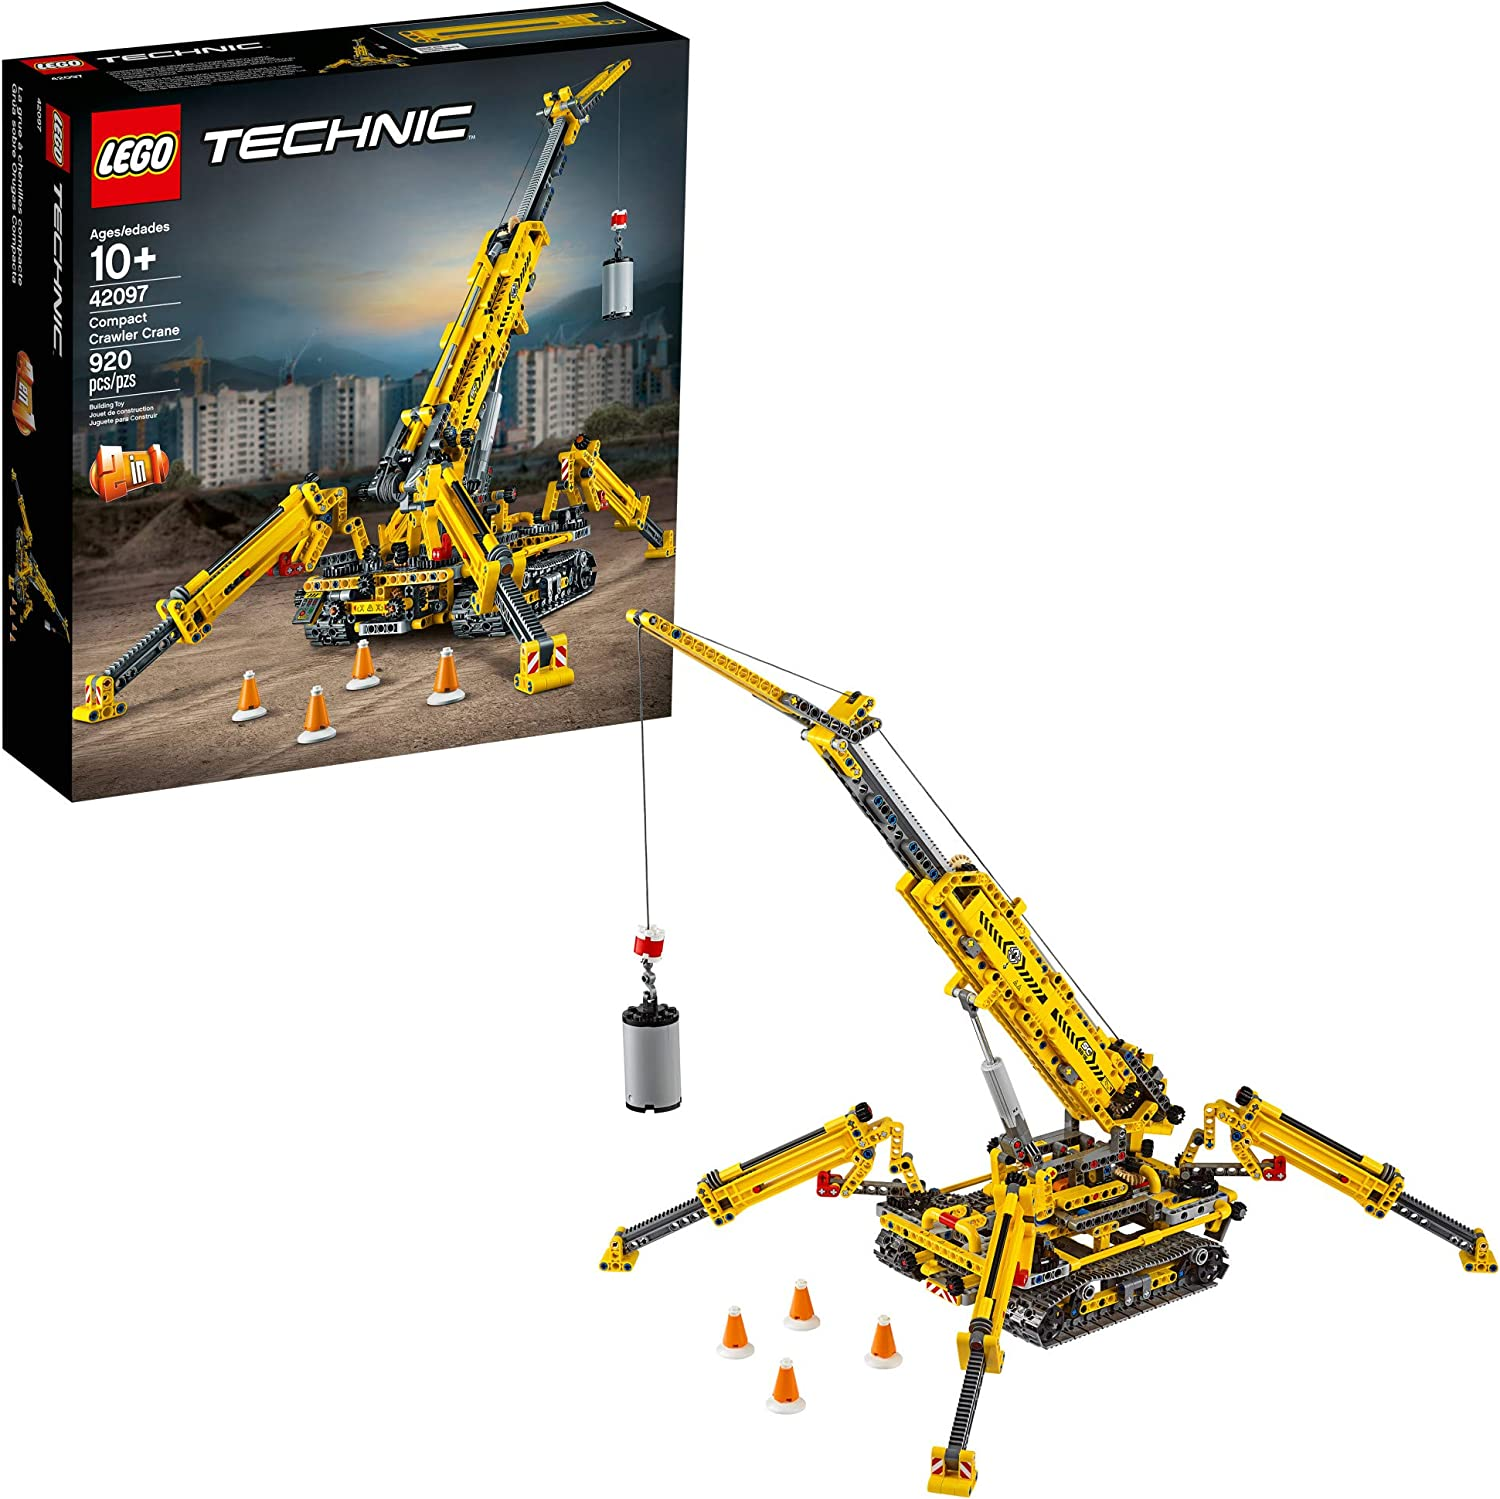 7 Best LEGO Crane Sets Reviews in 2021 Parents Can Buy 10